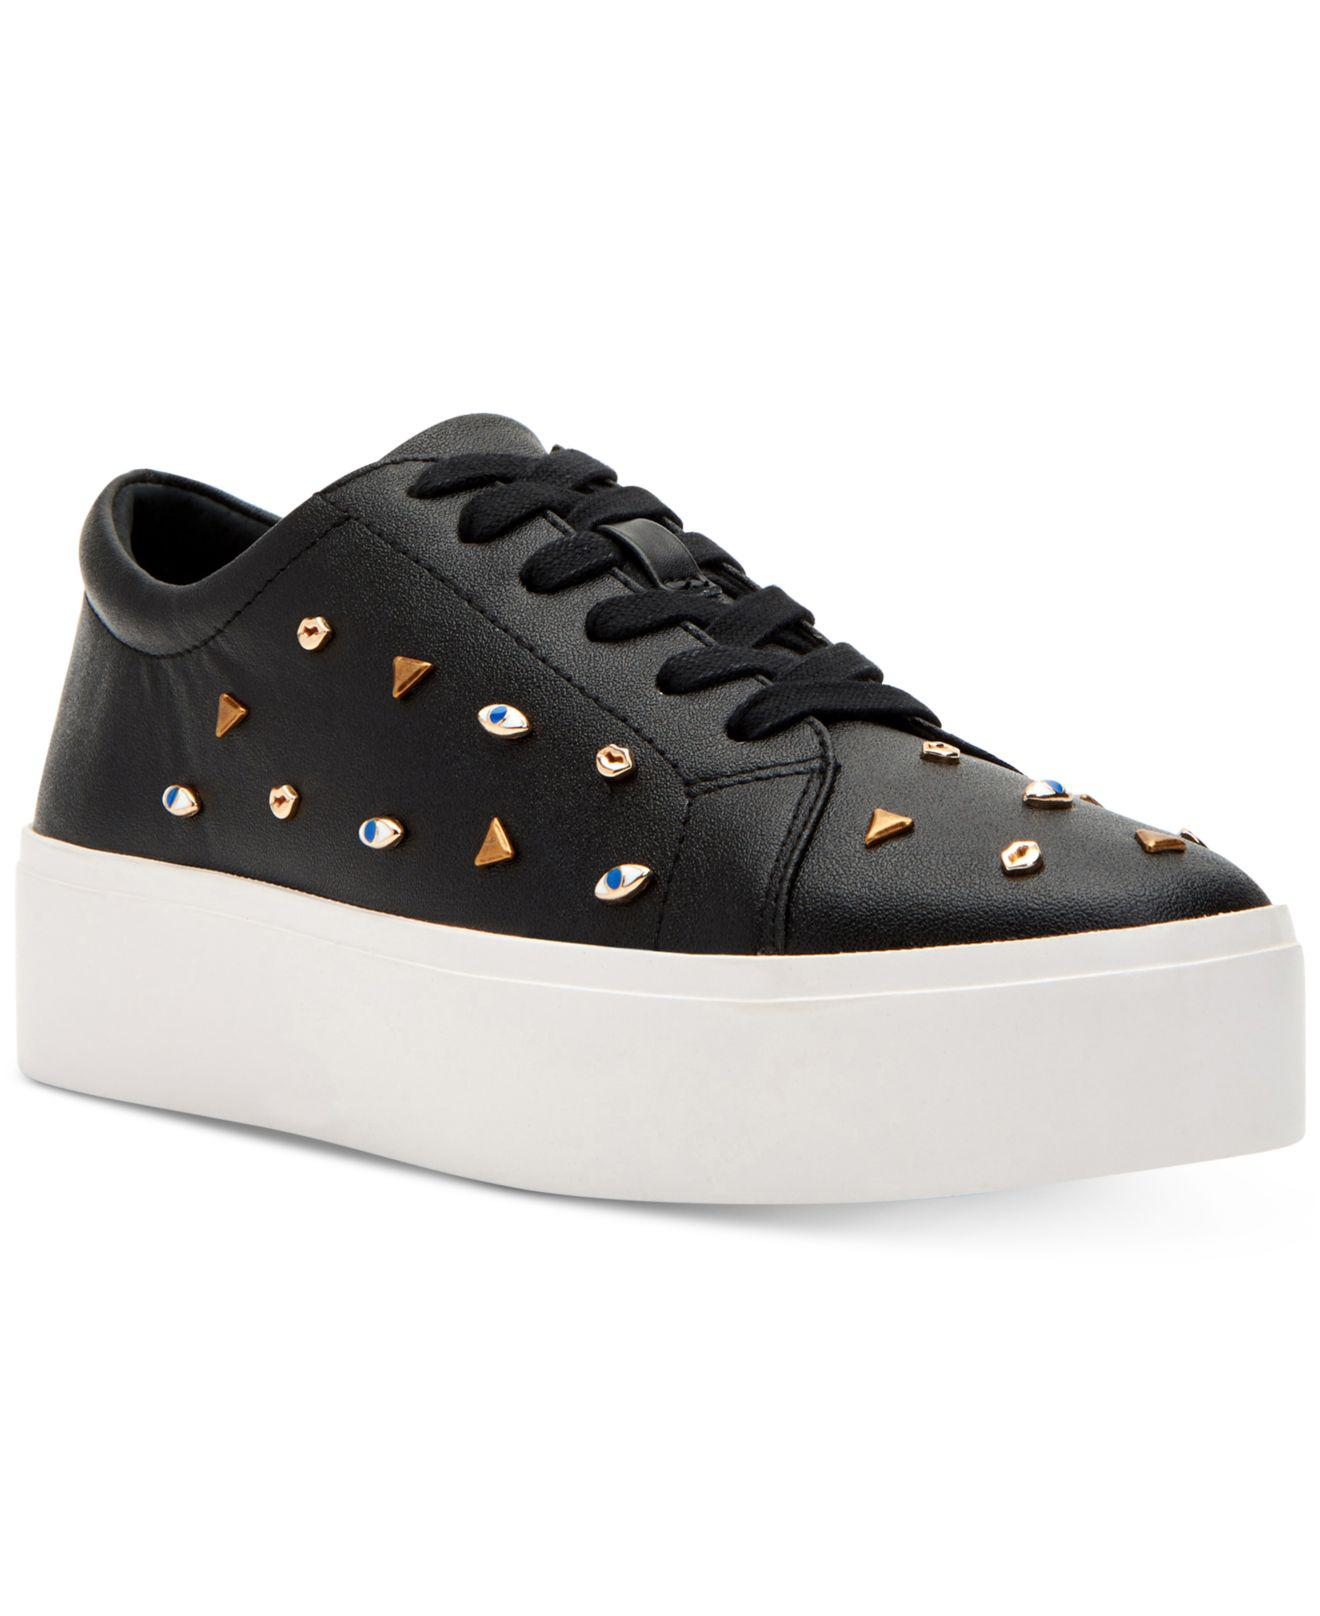 Katy Perry The Dylan Studded Flatform Sneakers abl0v